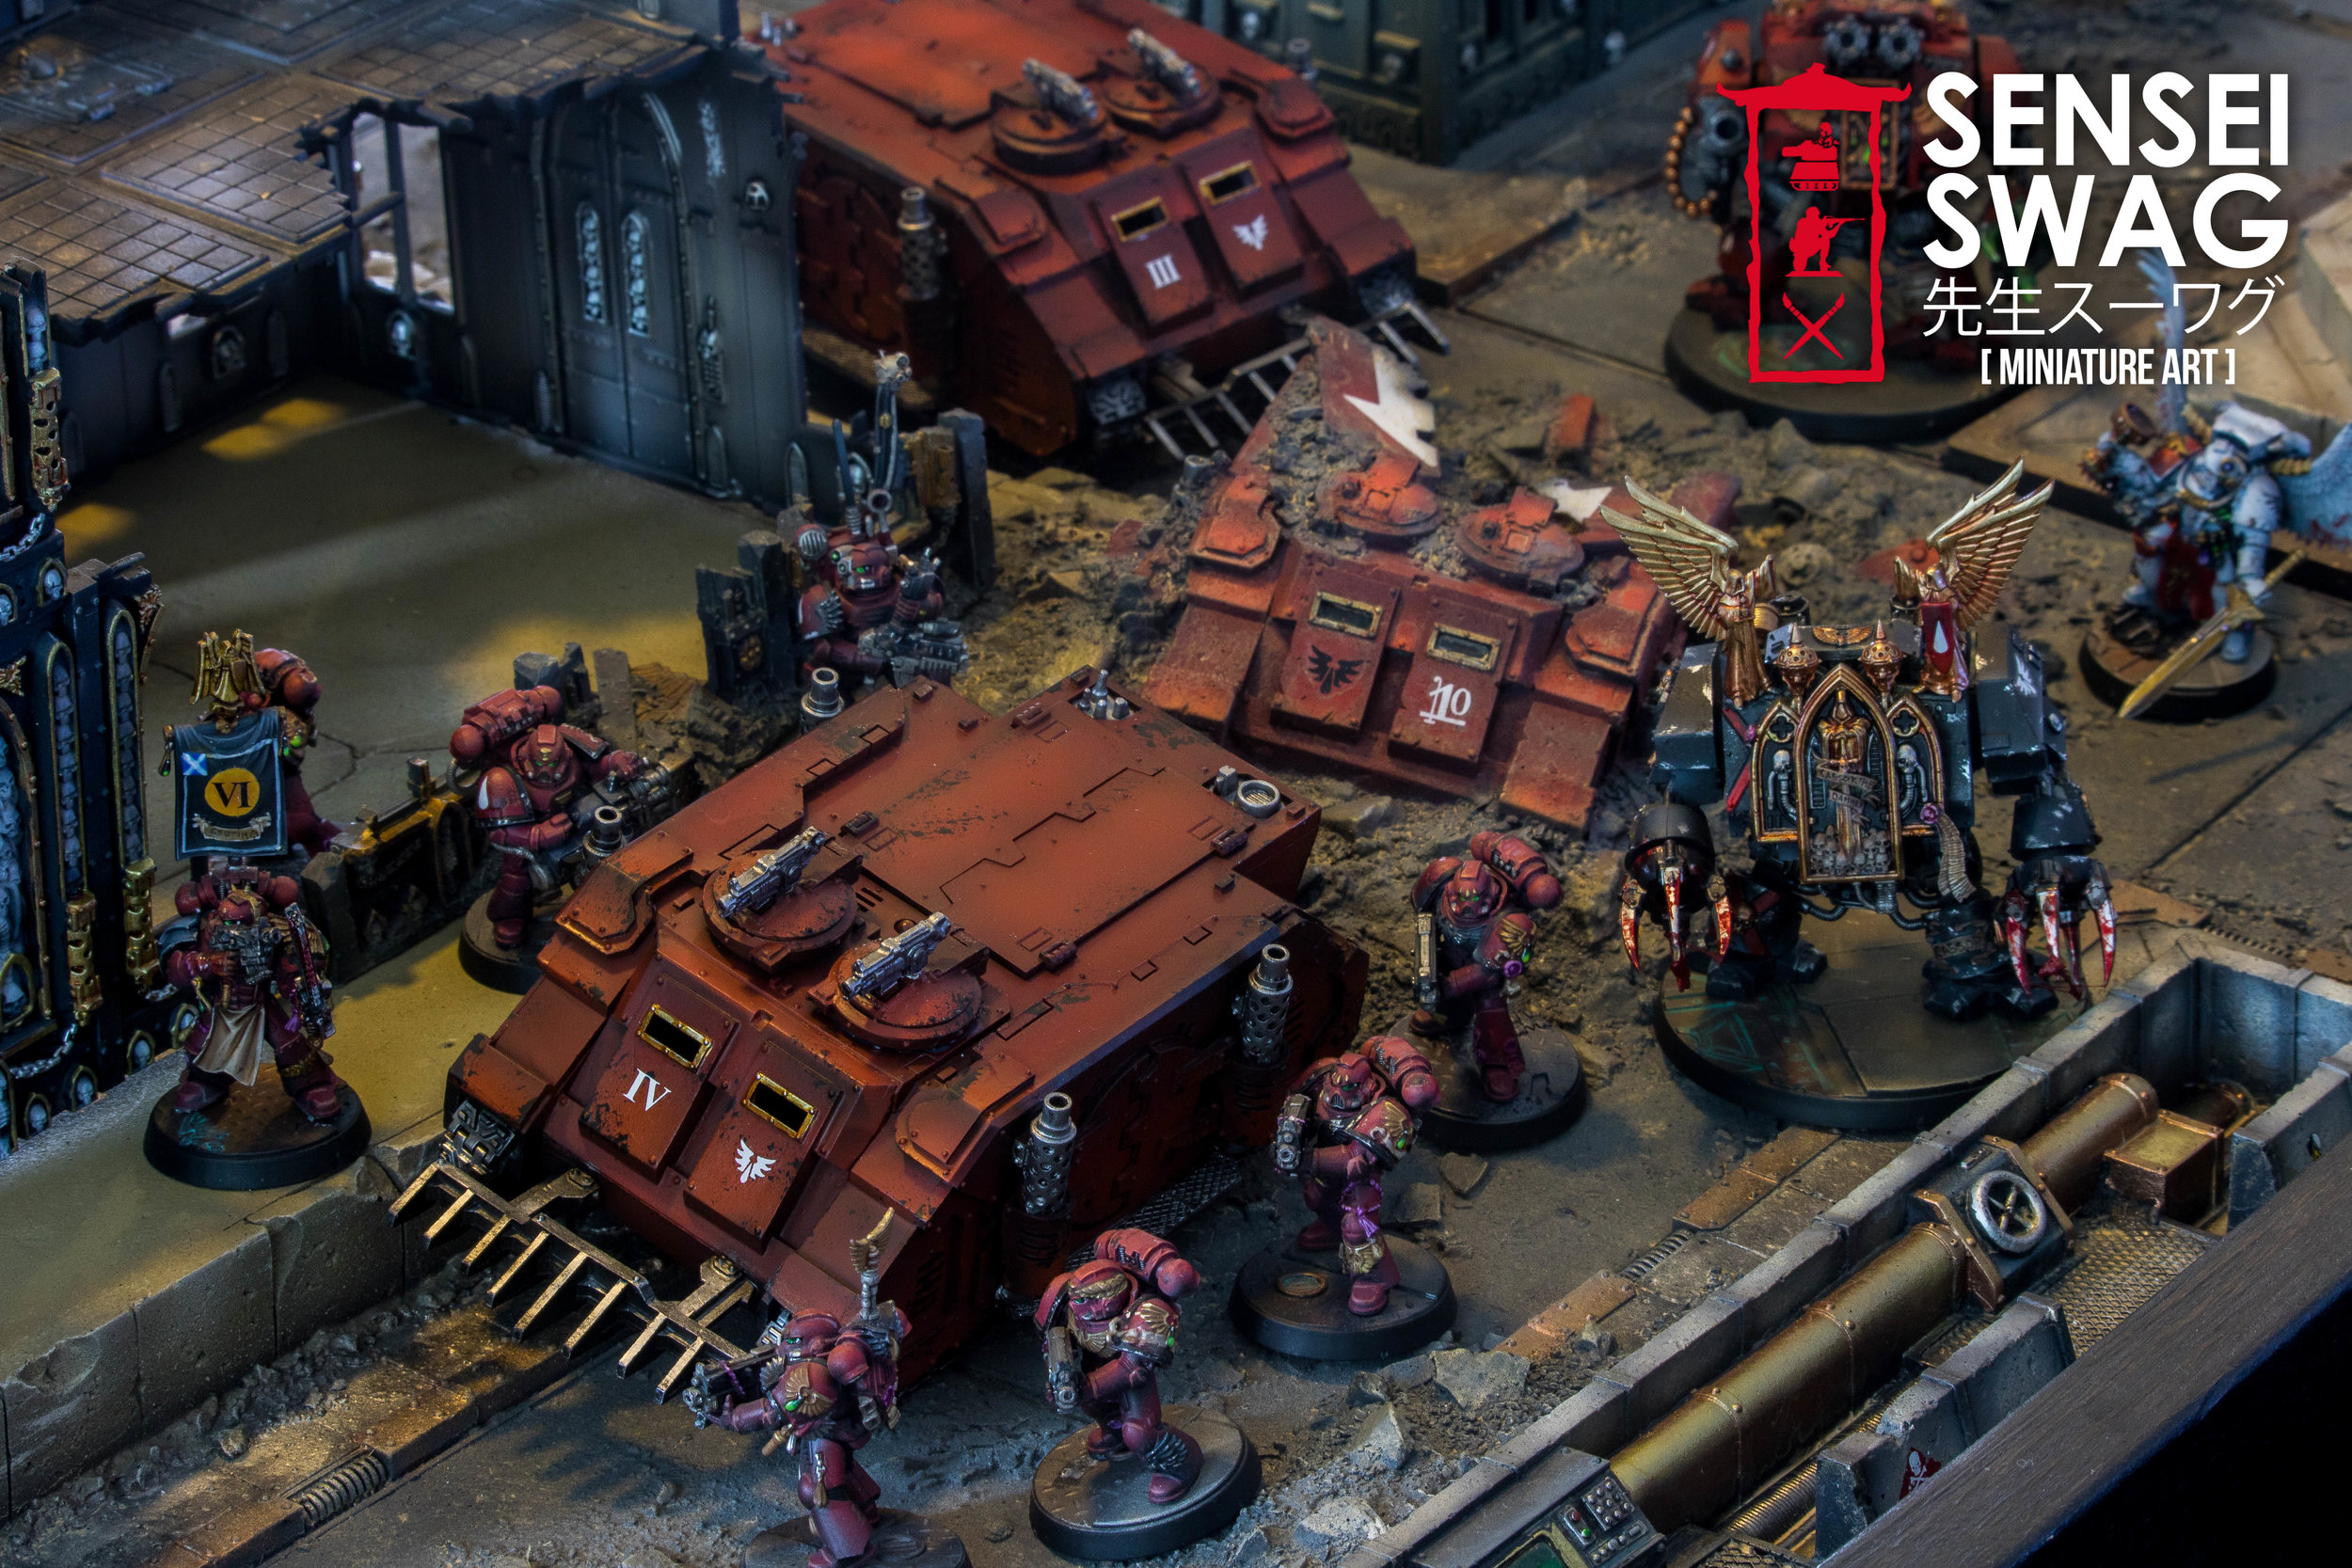 Warhammer 40k Cityfight Apocalypse Industrial Imperial Sector Forgeworld Gametable-6.jpg